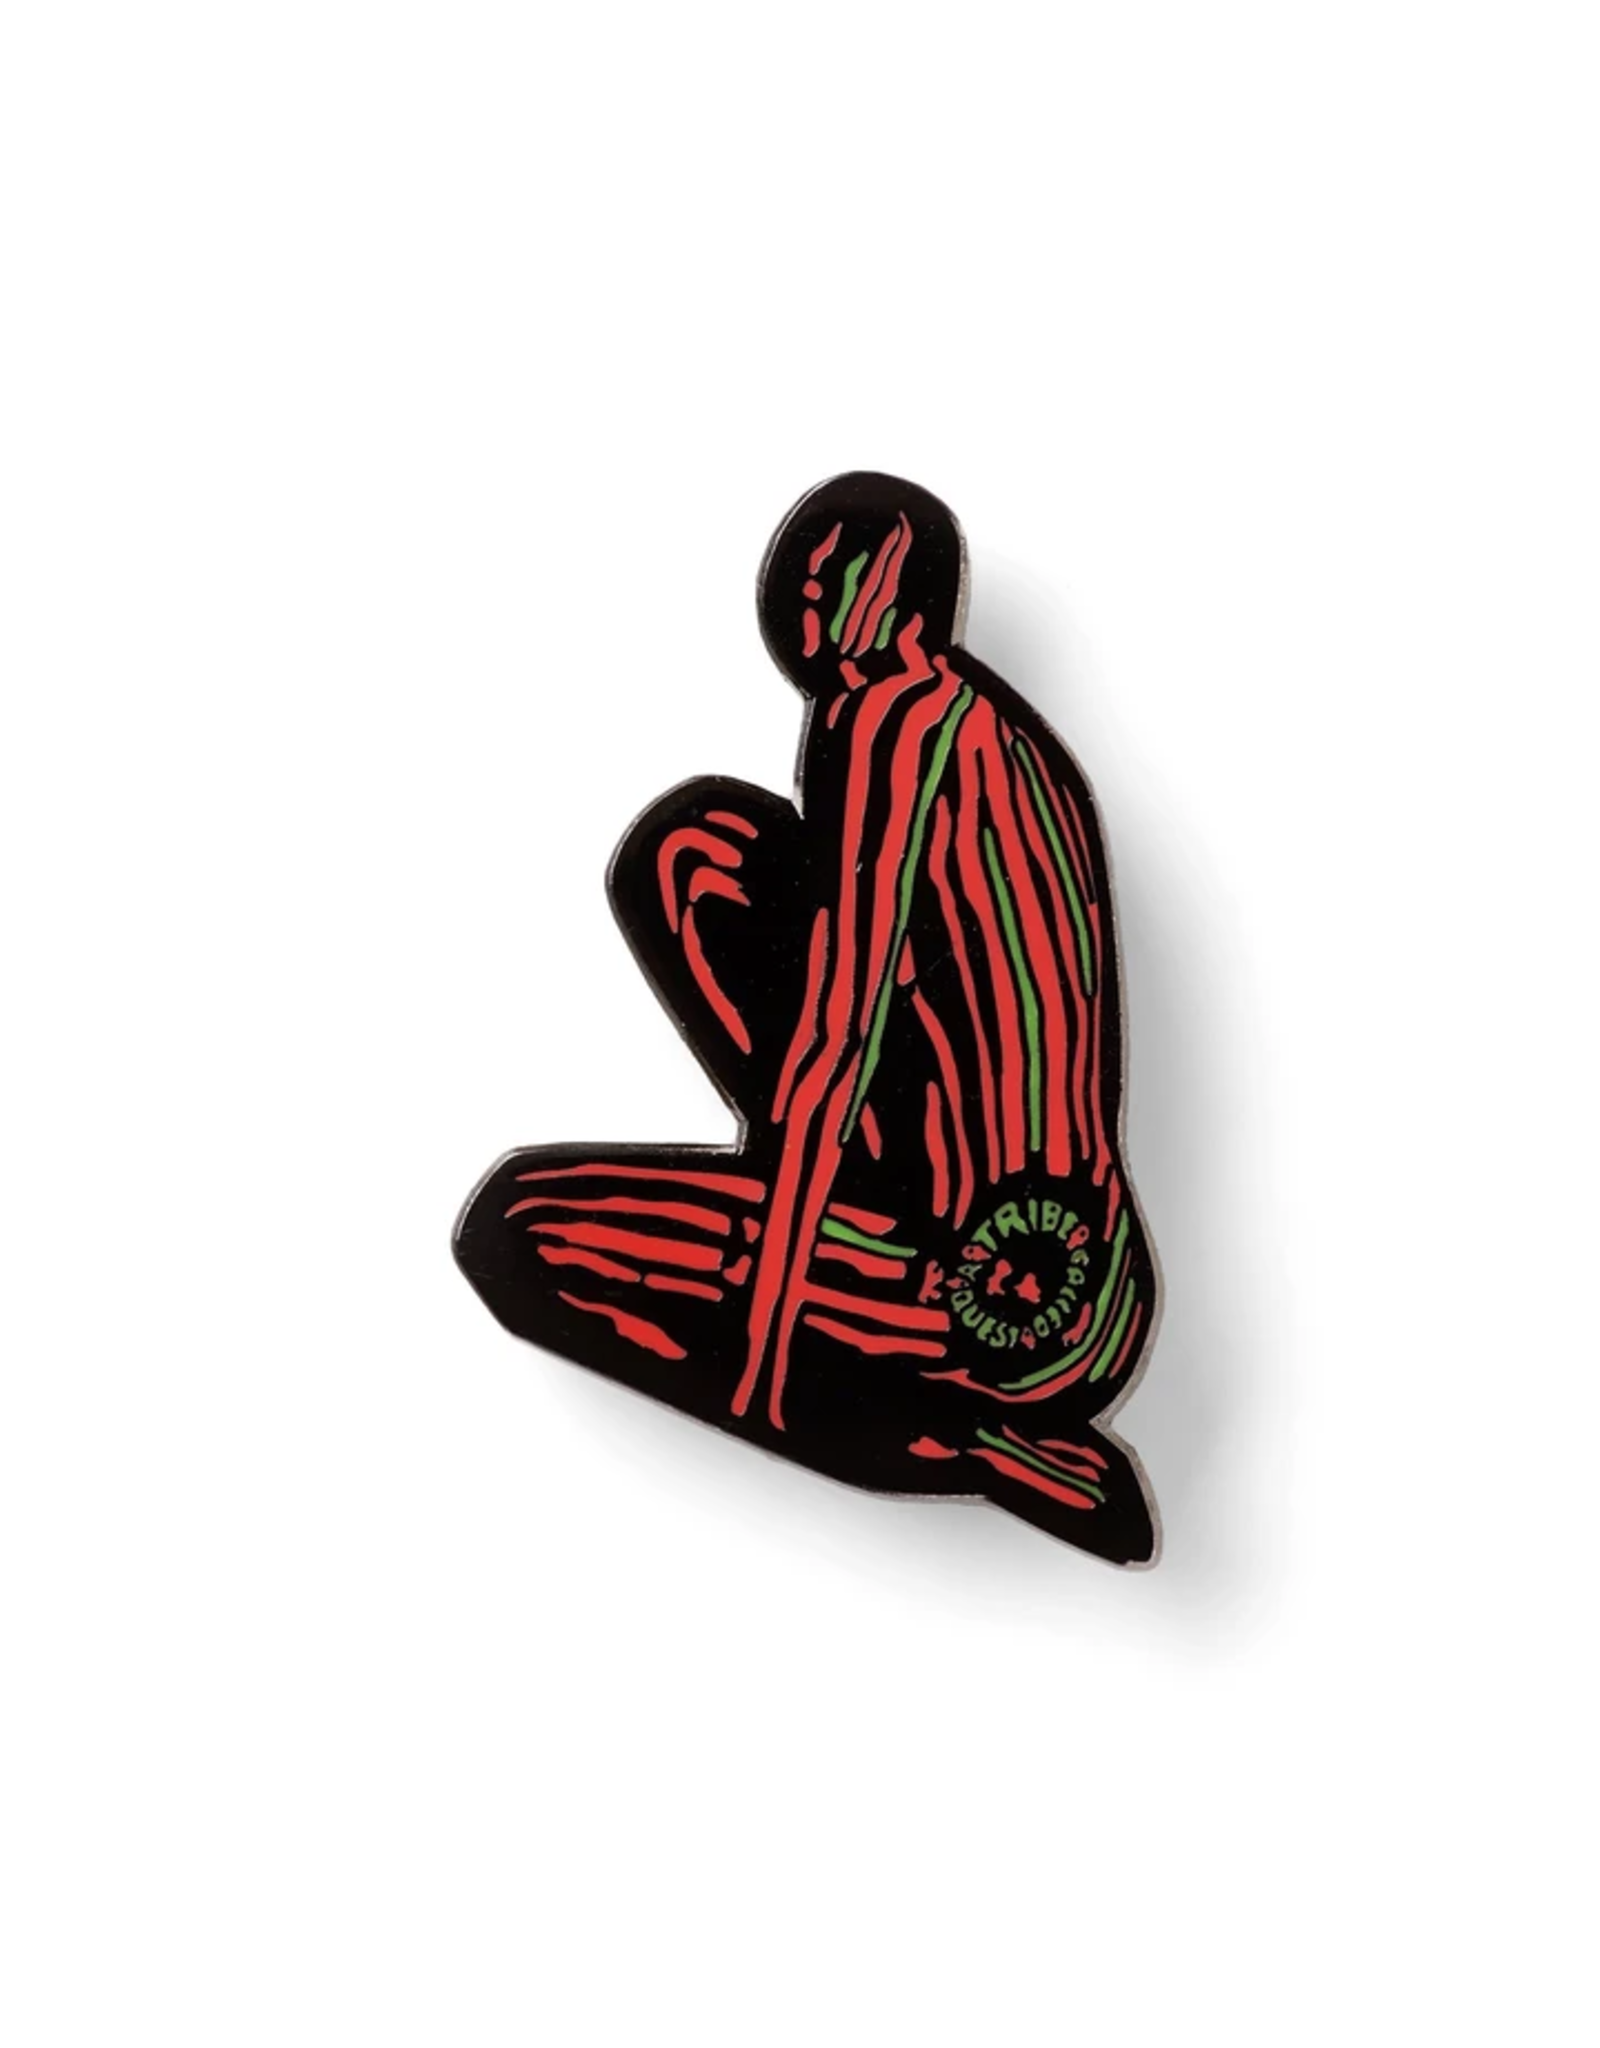 Enamel Pin Low End Theory Enamel Pin